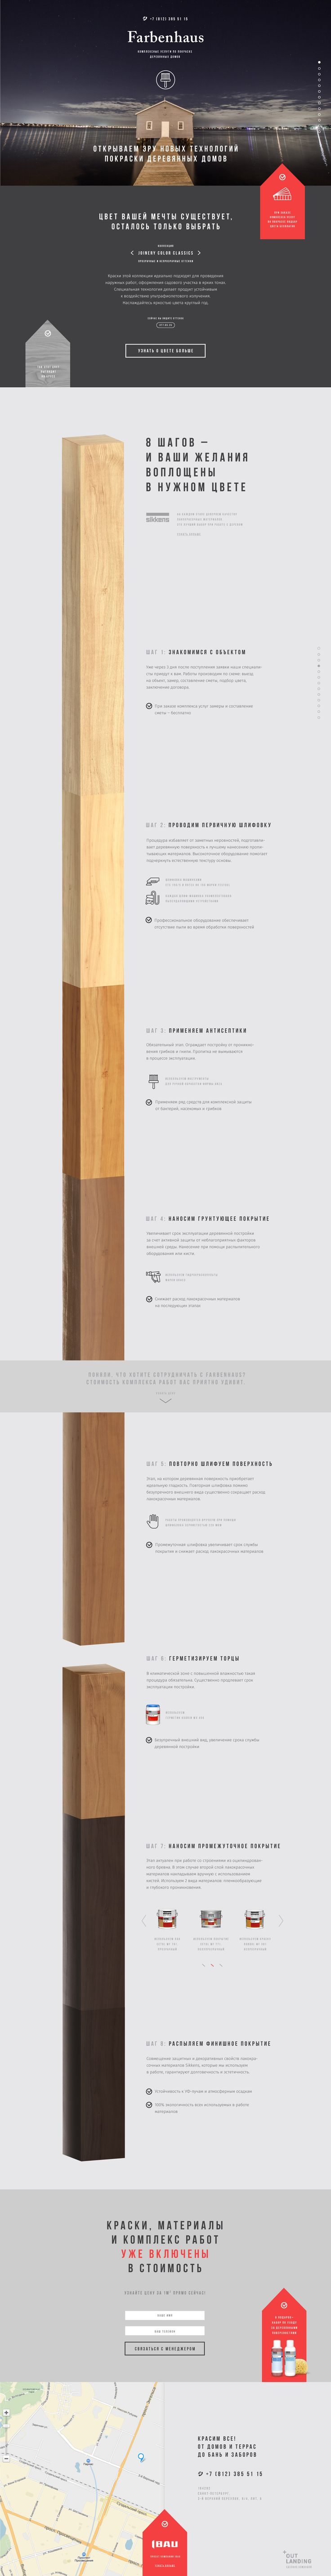 Farbenhaus. Wood crafter. (More design inspiration at www.aldenchong.com)